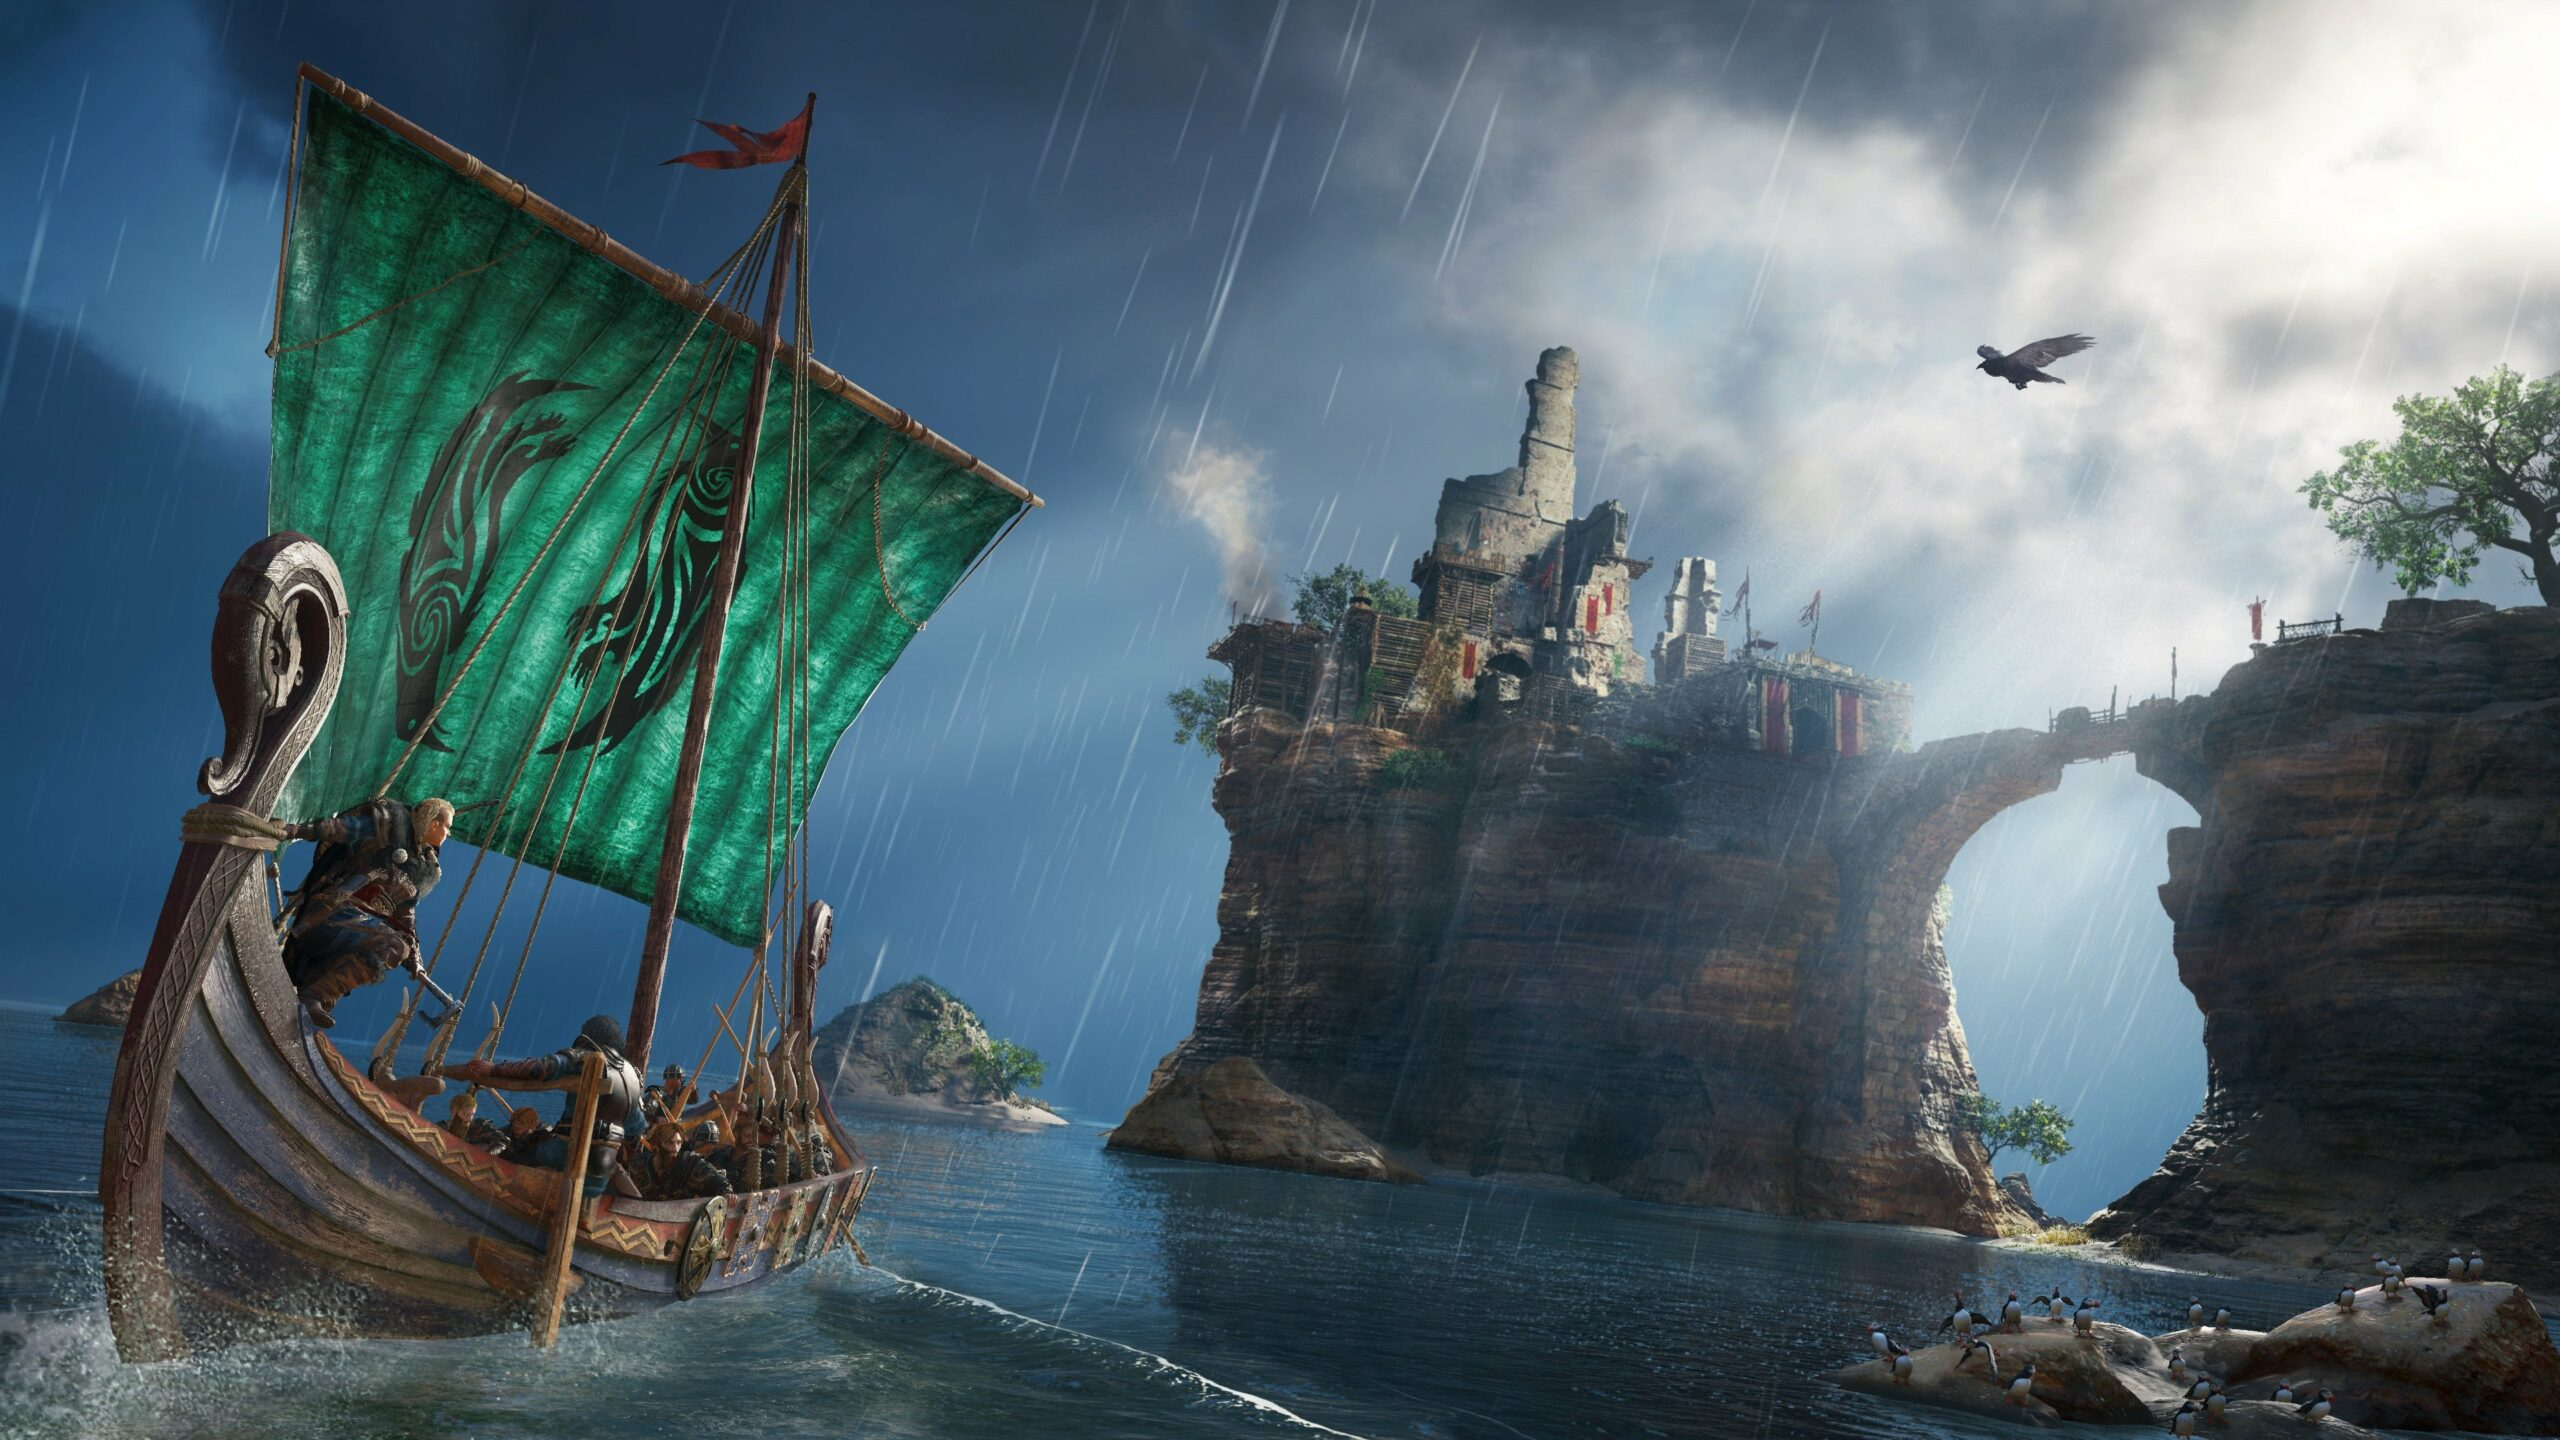 Assassin S Creed Valhalla New Video Provides New Look At Major Cities Raid Loops Jomsvikings New Details And More